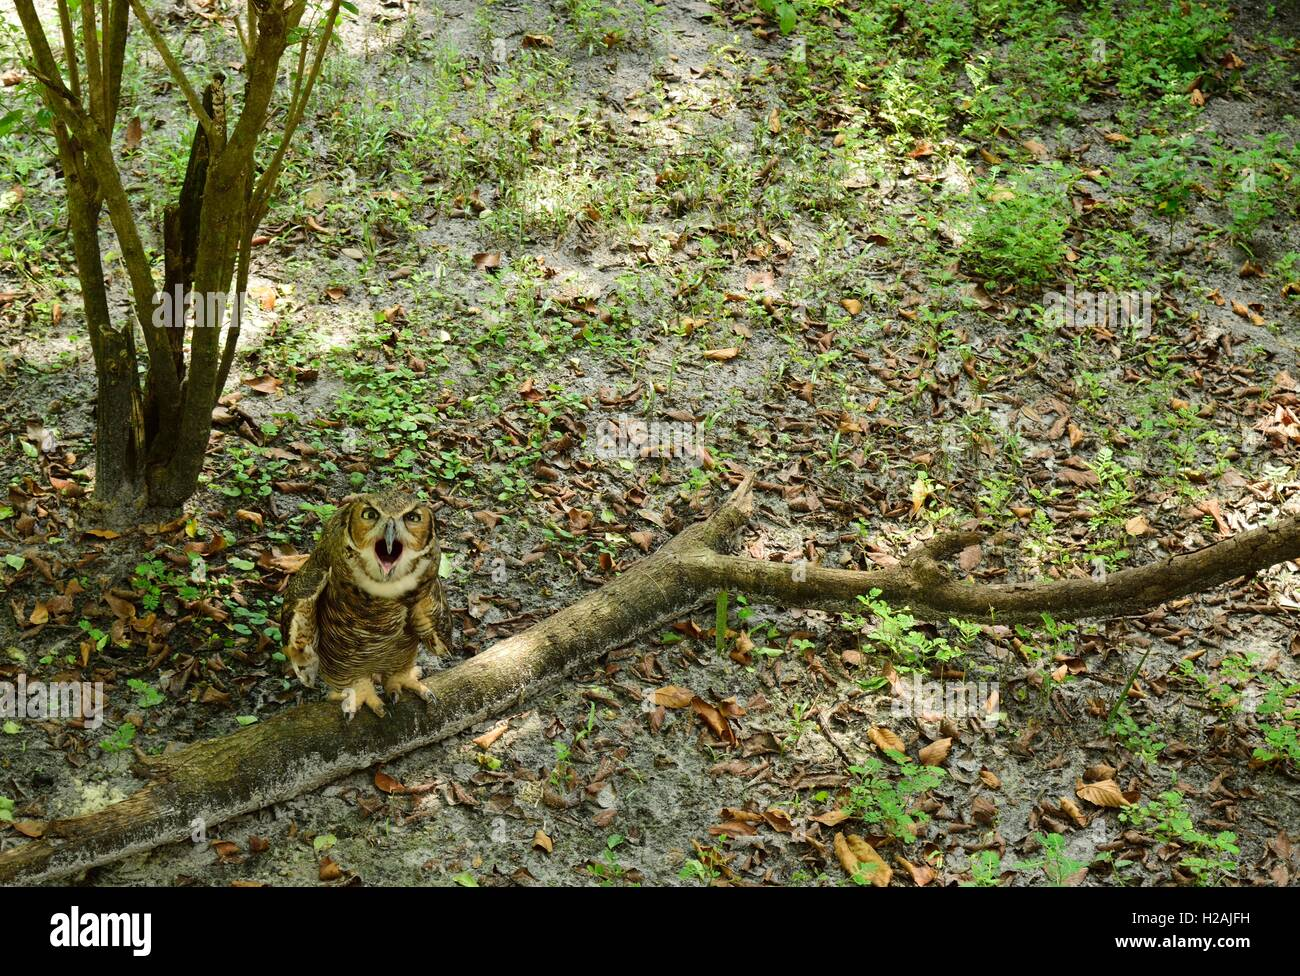 Distressed owl sitting on a branch on the ground. - Stock Image